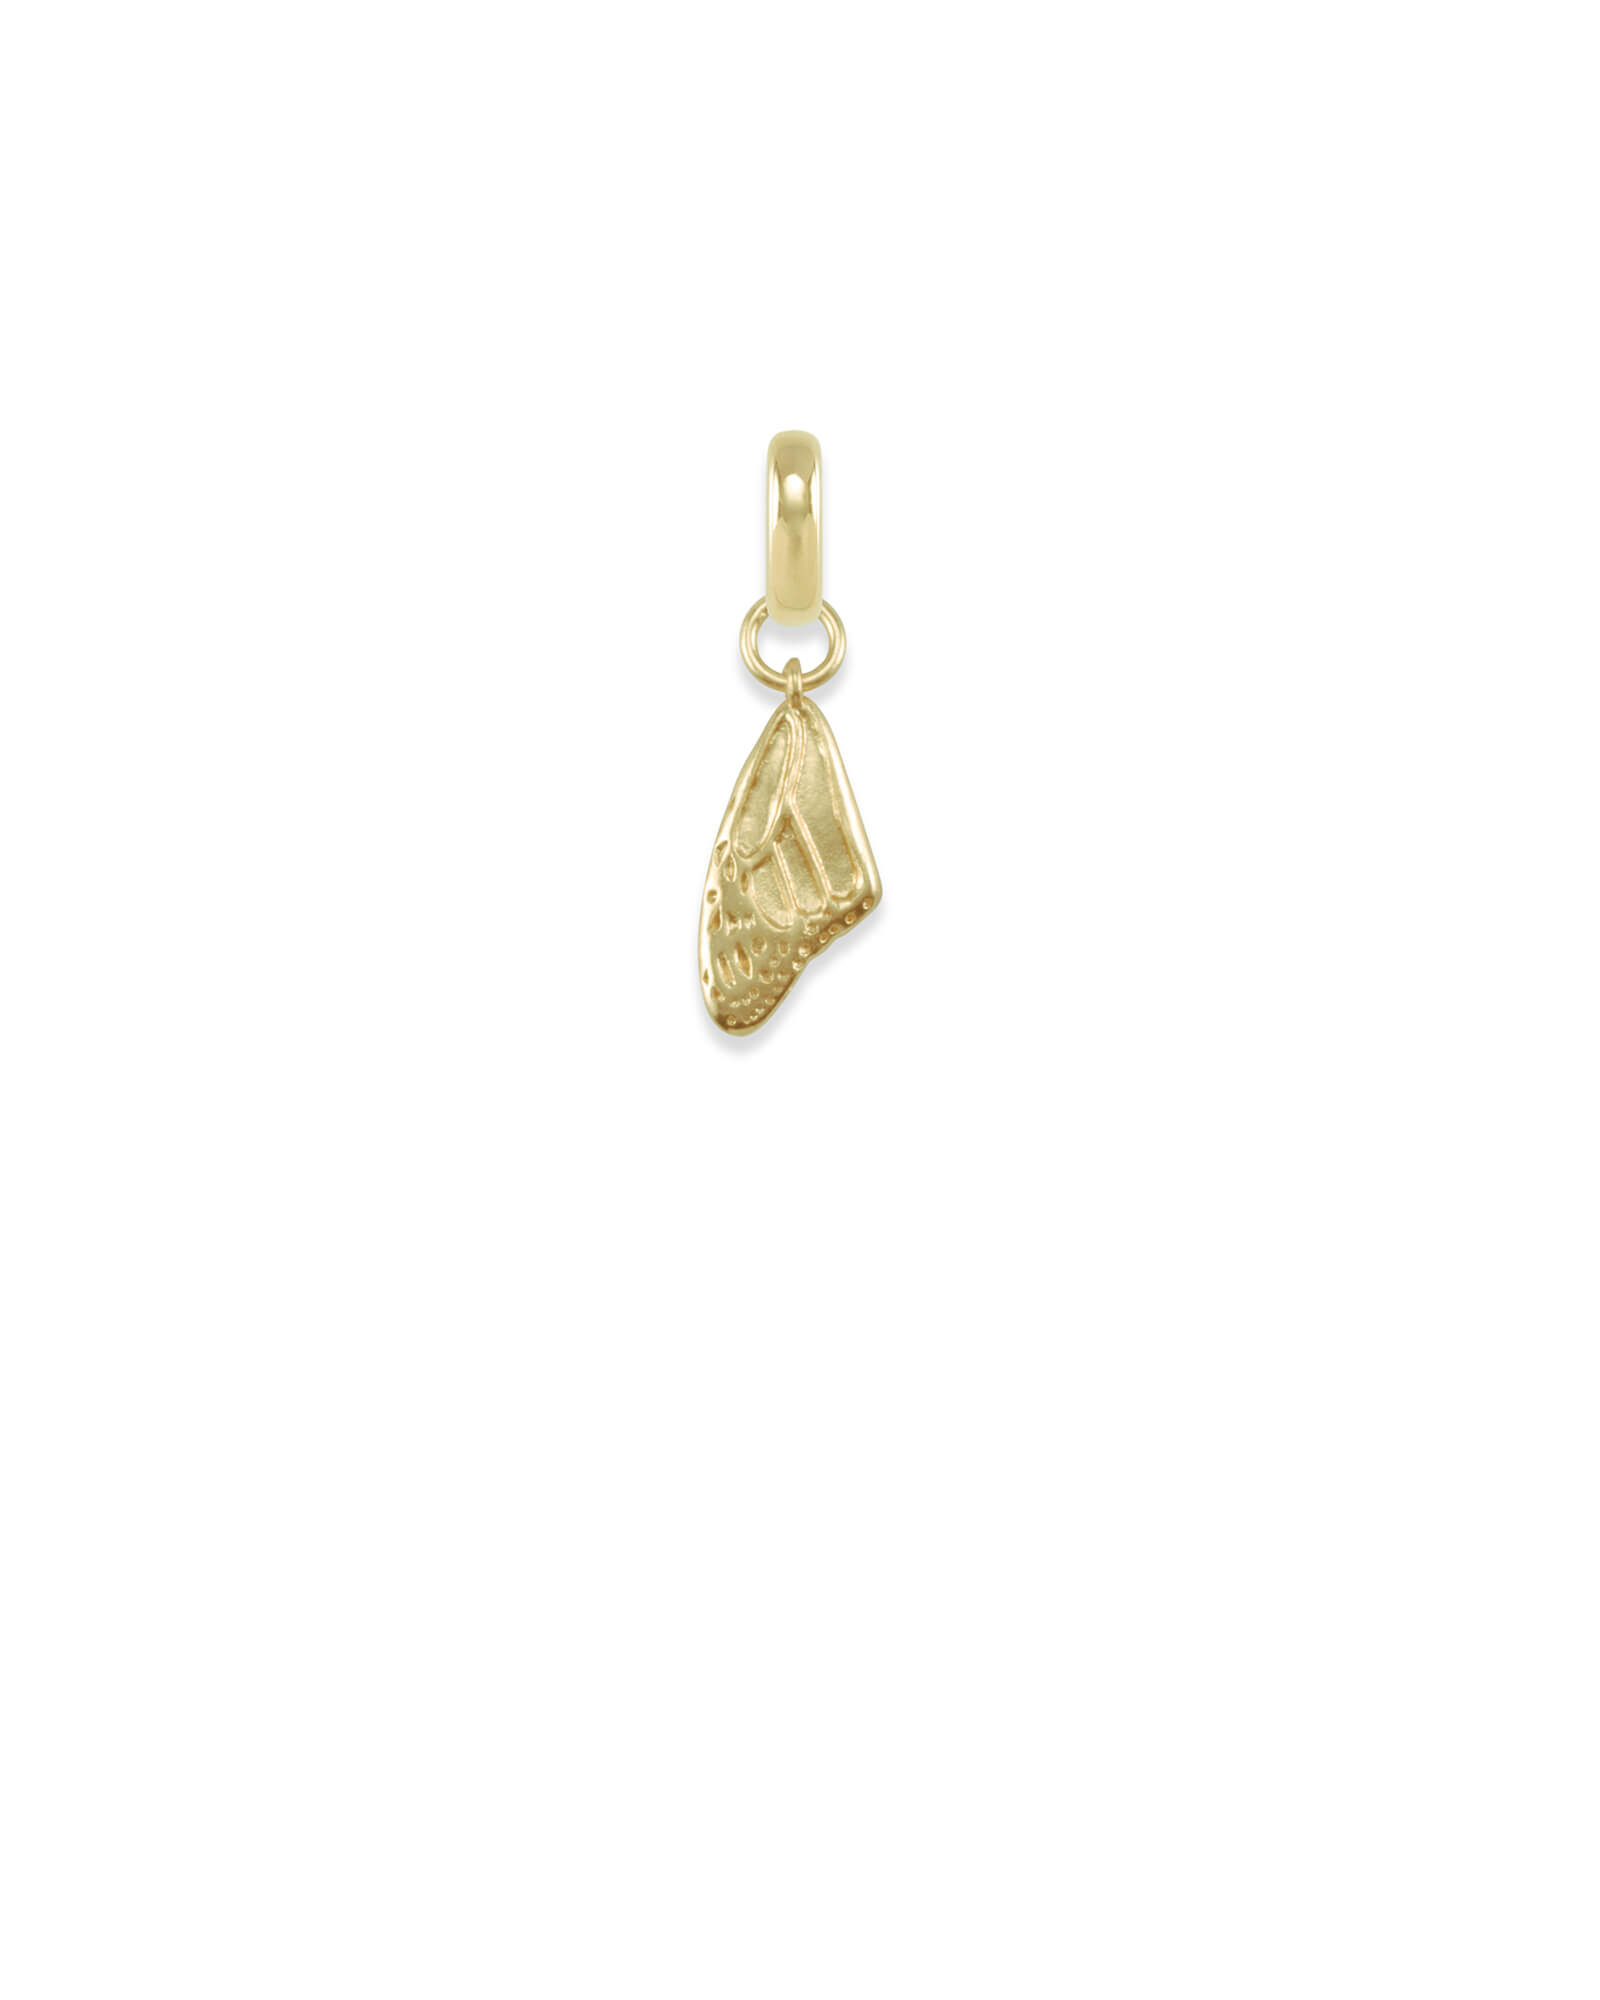 Breast Cancer Butterfly Wing Charm in Gold